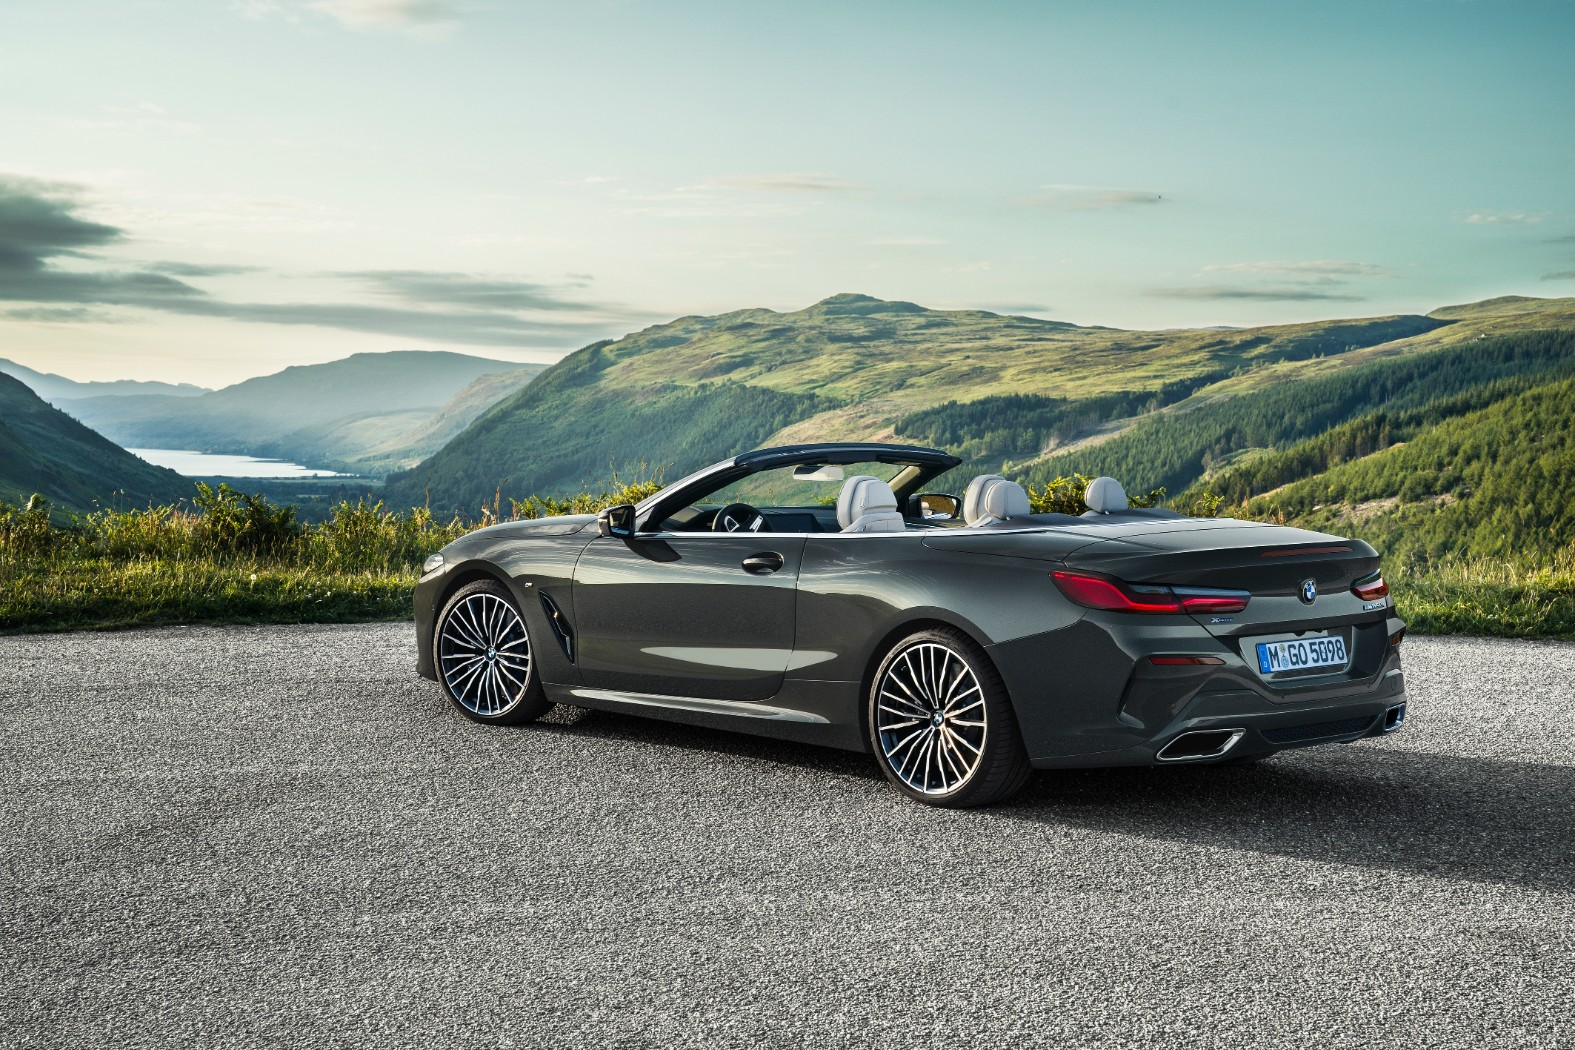 BMW 8 Series Convertible videos highlight the M850i